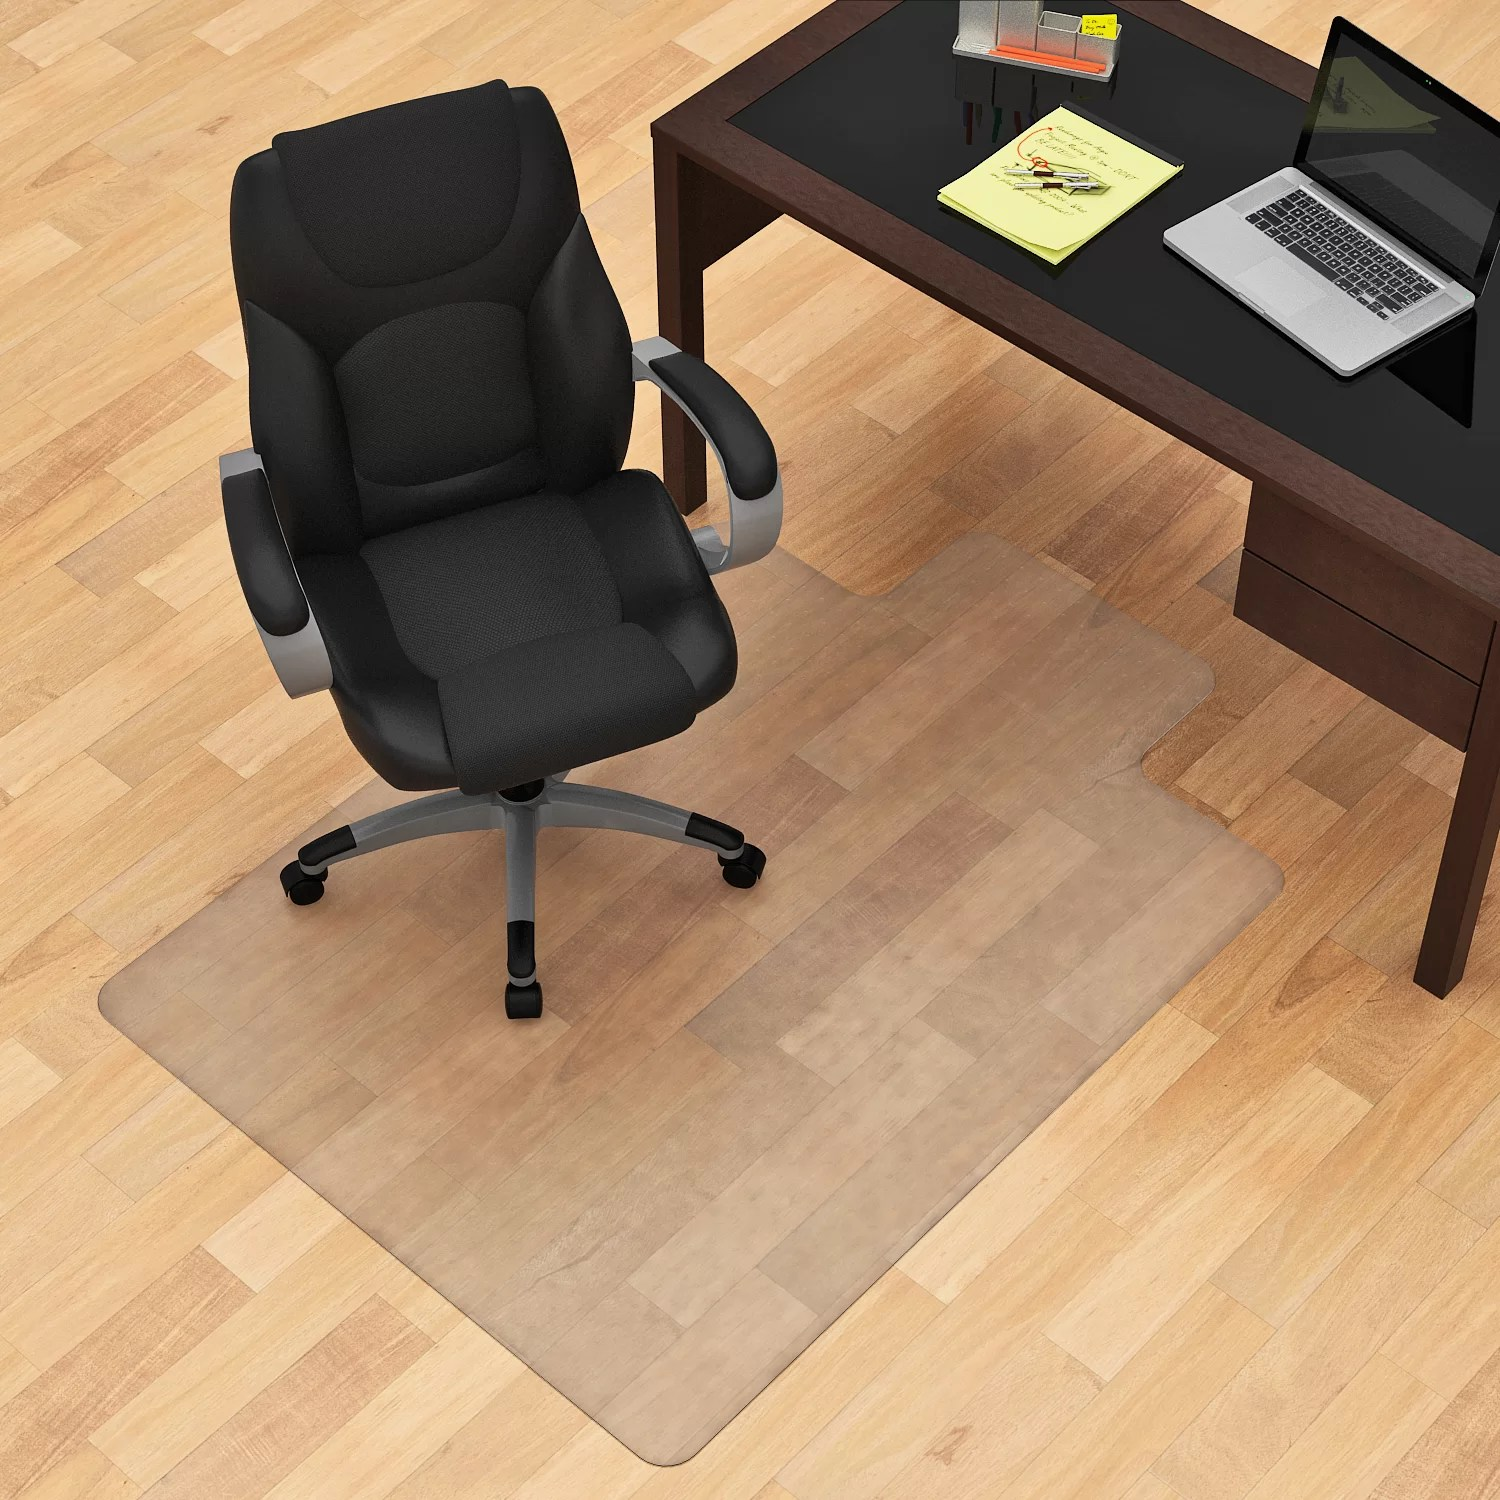 ZLine Designs Hard Floor Straight Edge Chair Mat